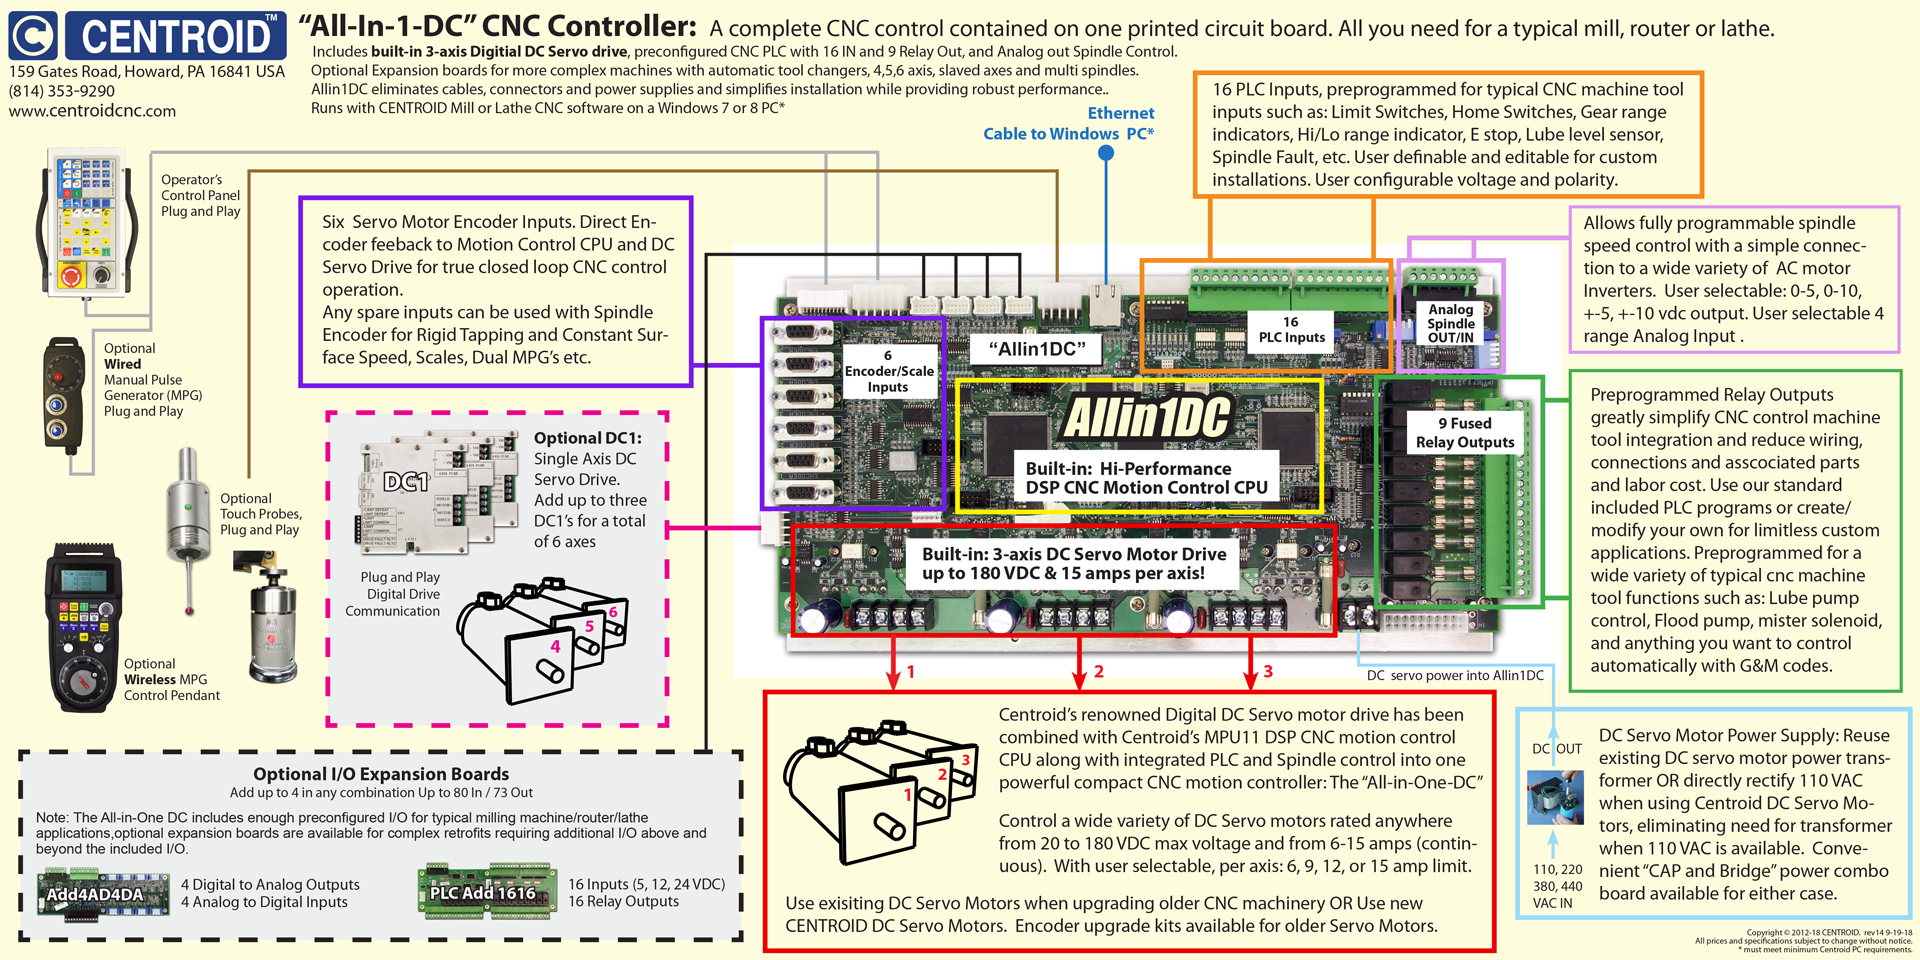 Centroid Cnc Controller Technology For Ac And Dc Servo Motor Based Block Diagram Of Rc Contents Drives Built Into The Allin1dc